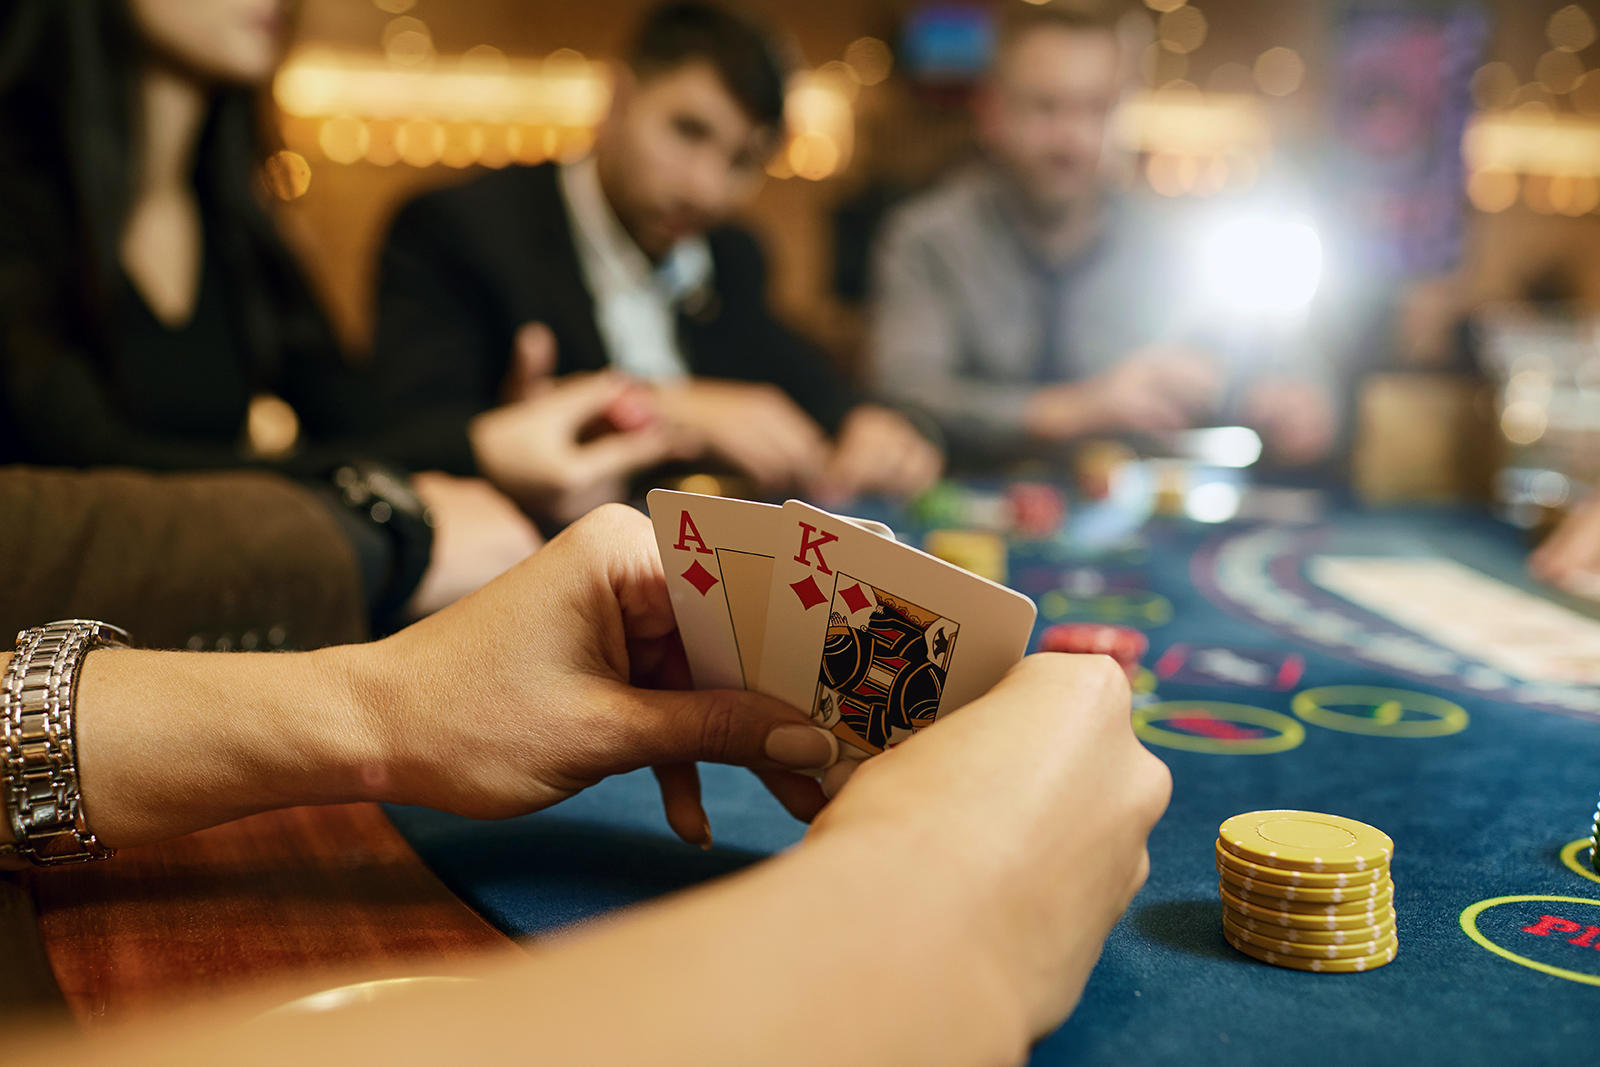 Close up of hands at Blackjack table